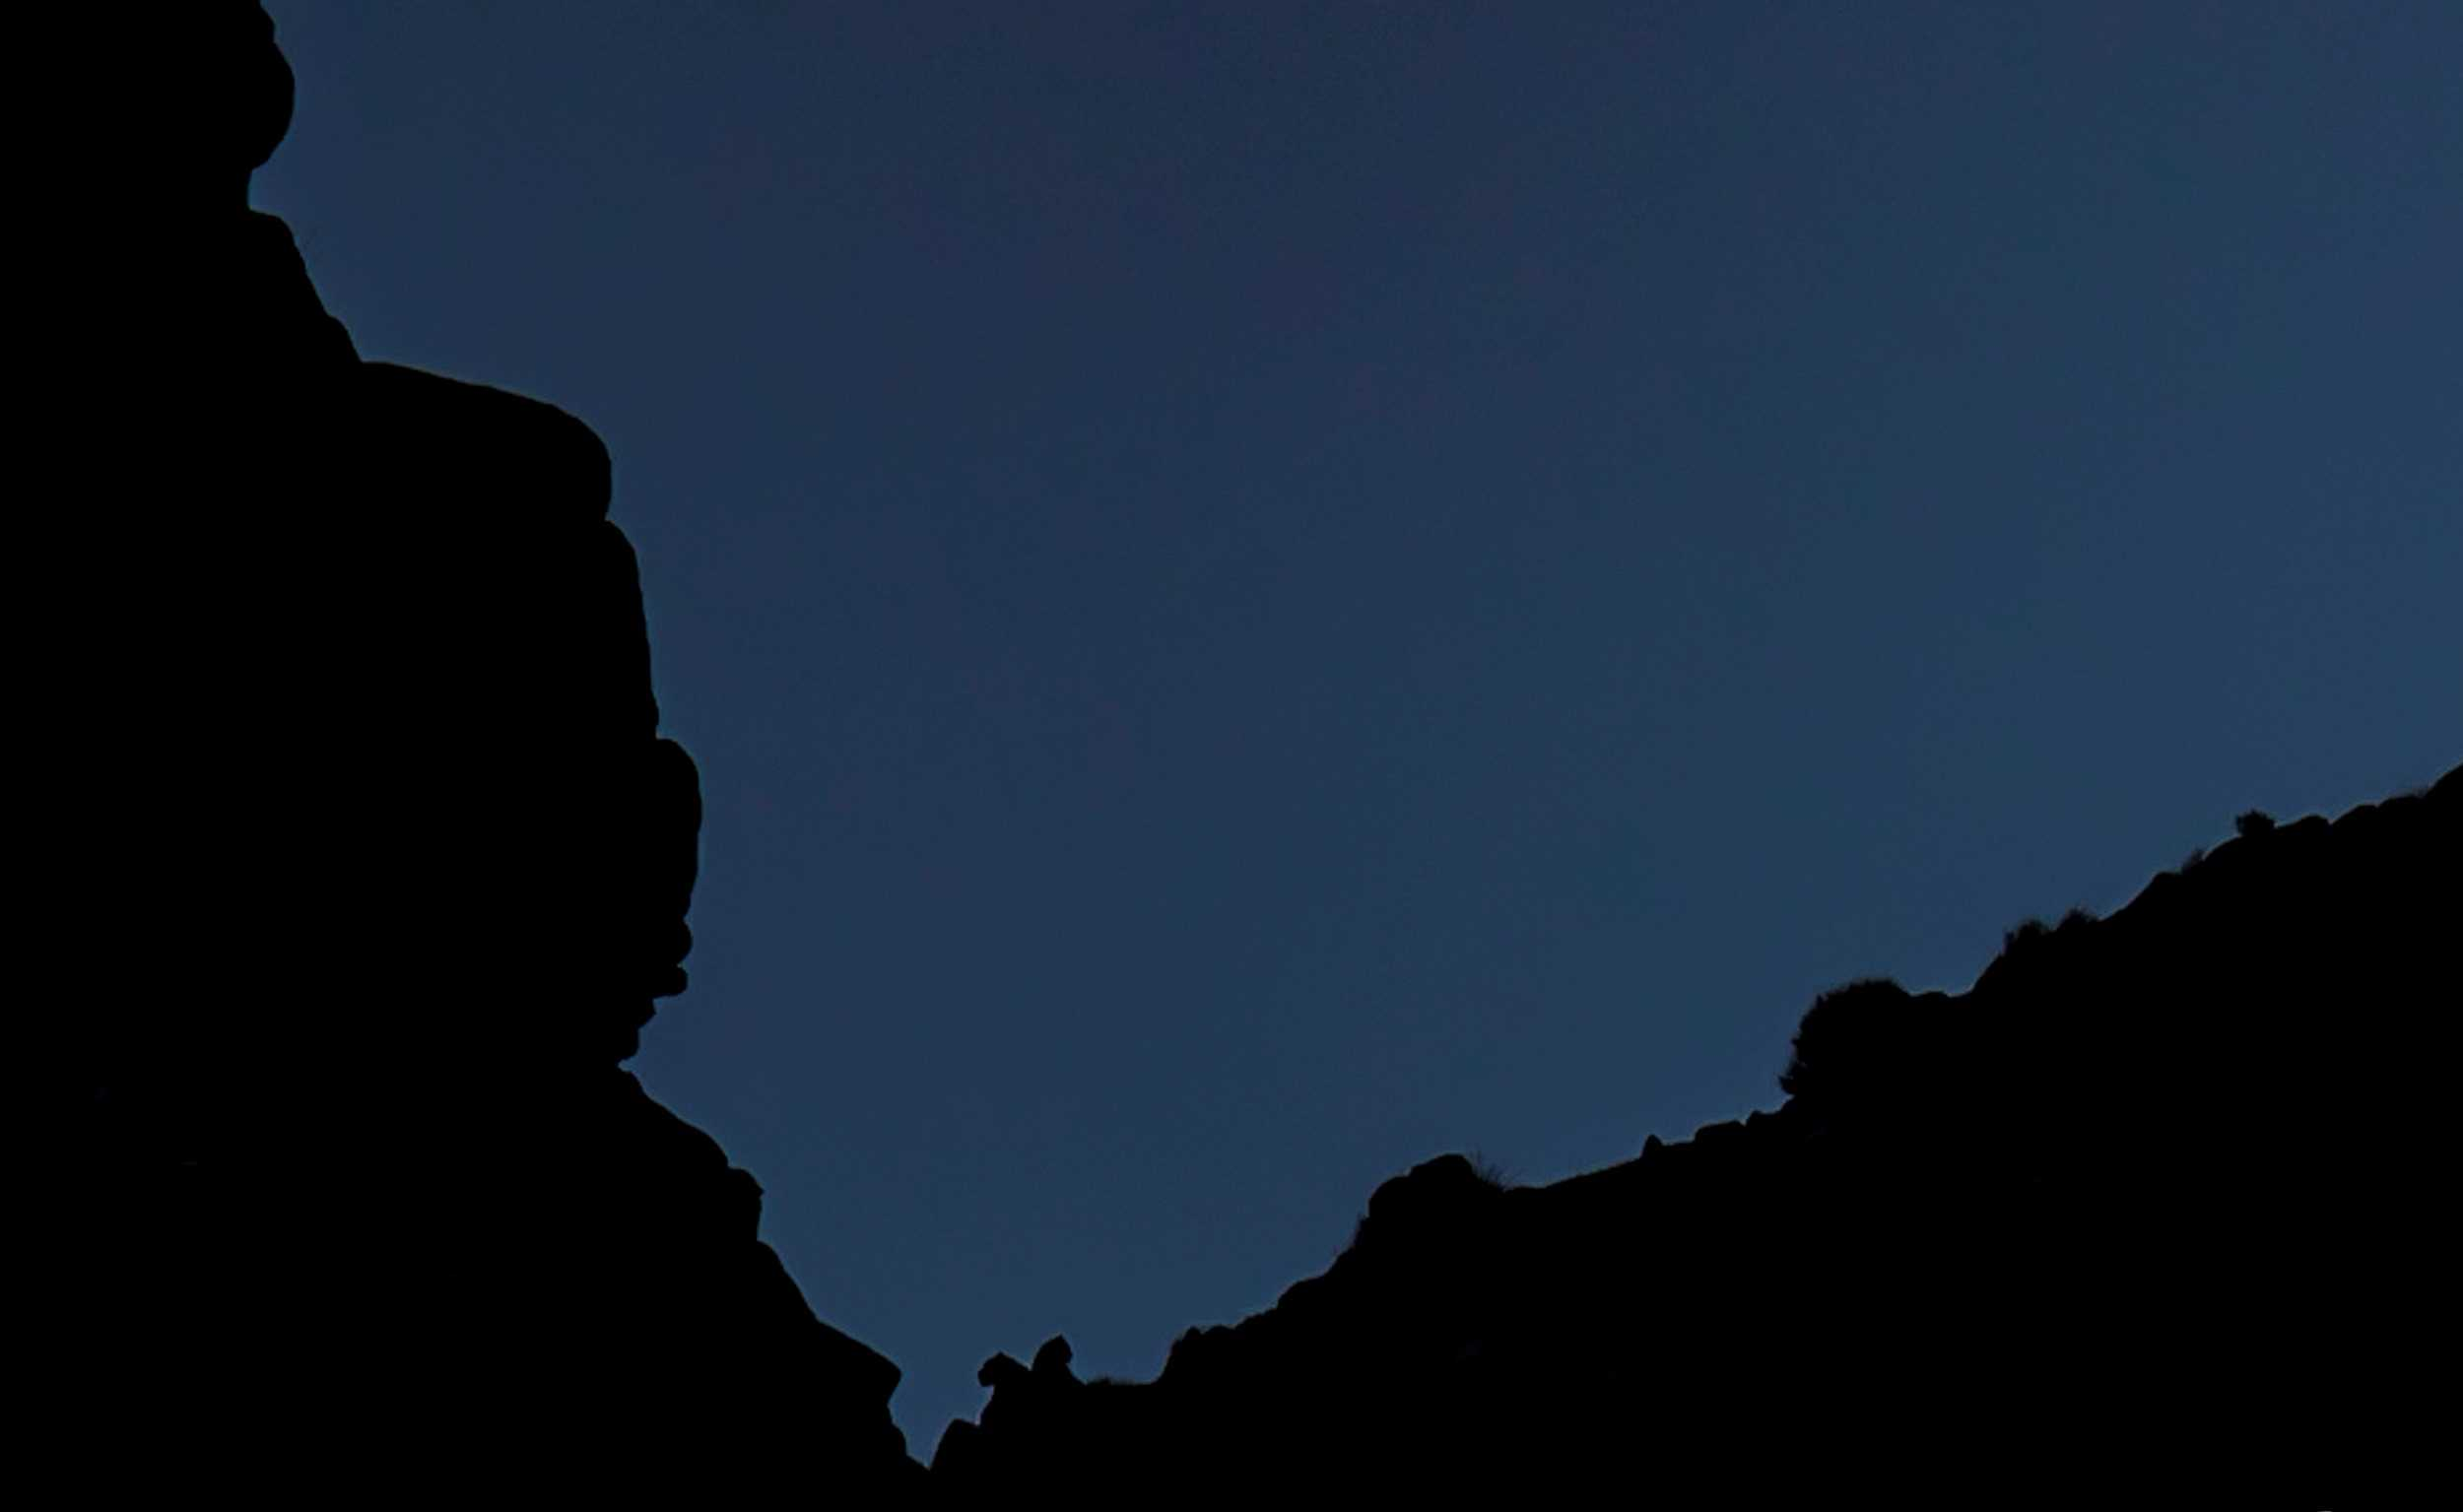 Silhouettes of two Snow Leopards in Ladakh (Image by Paul Goldstein)